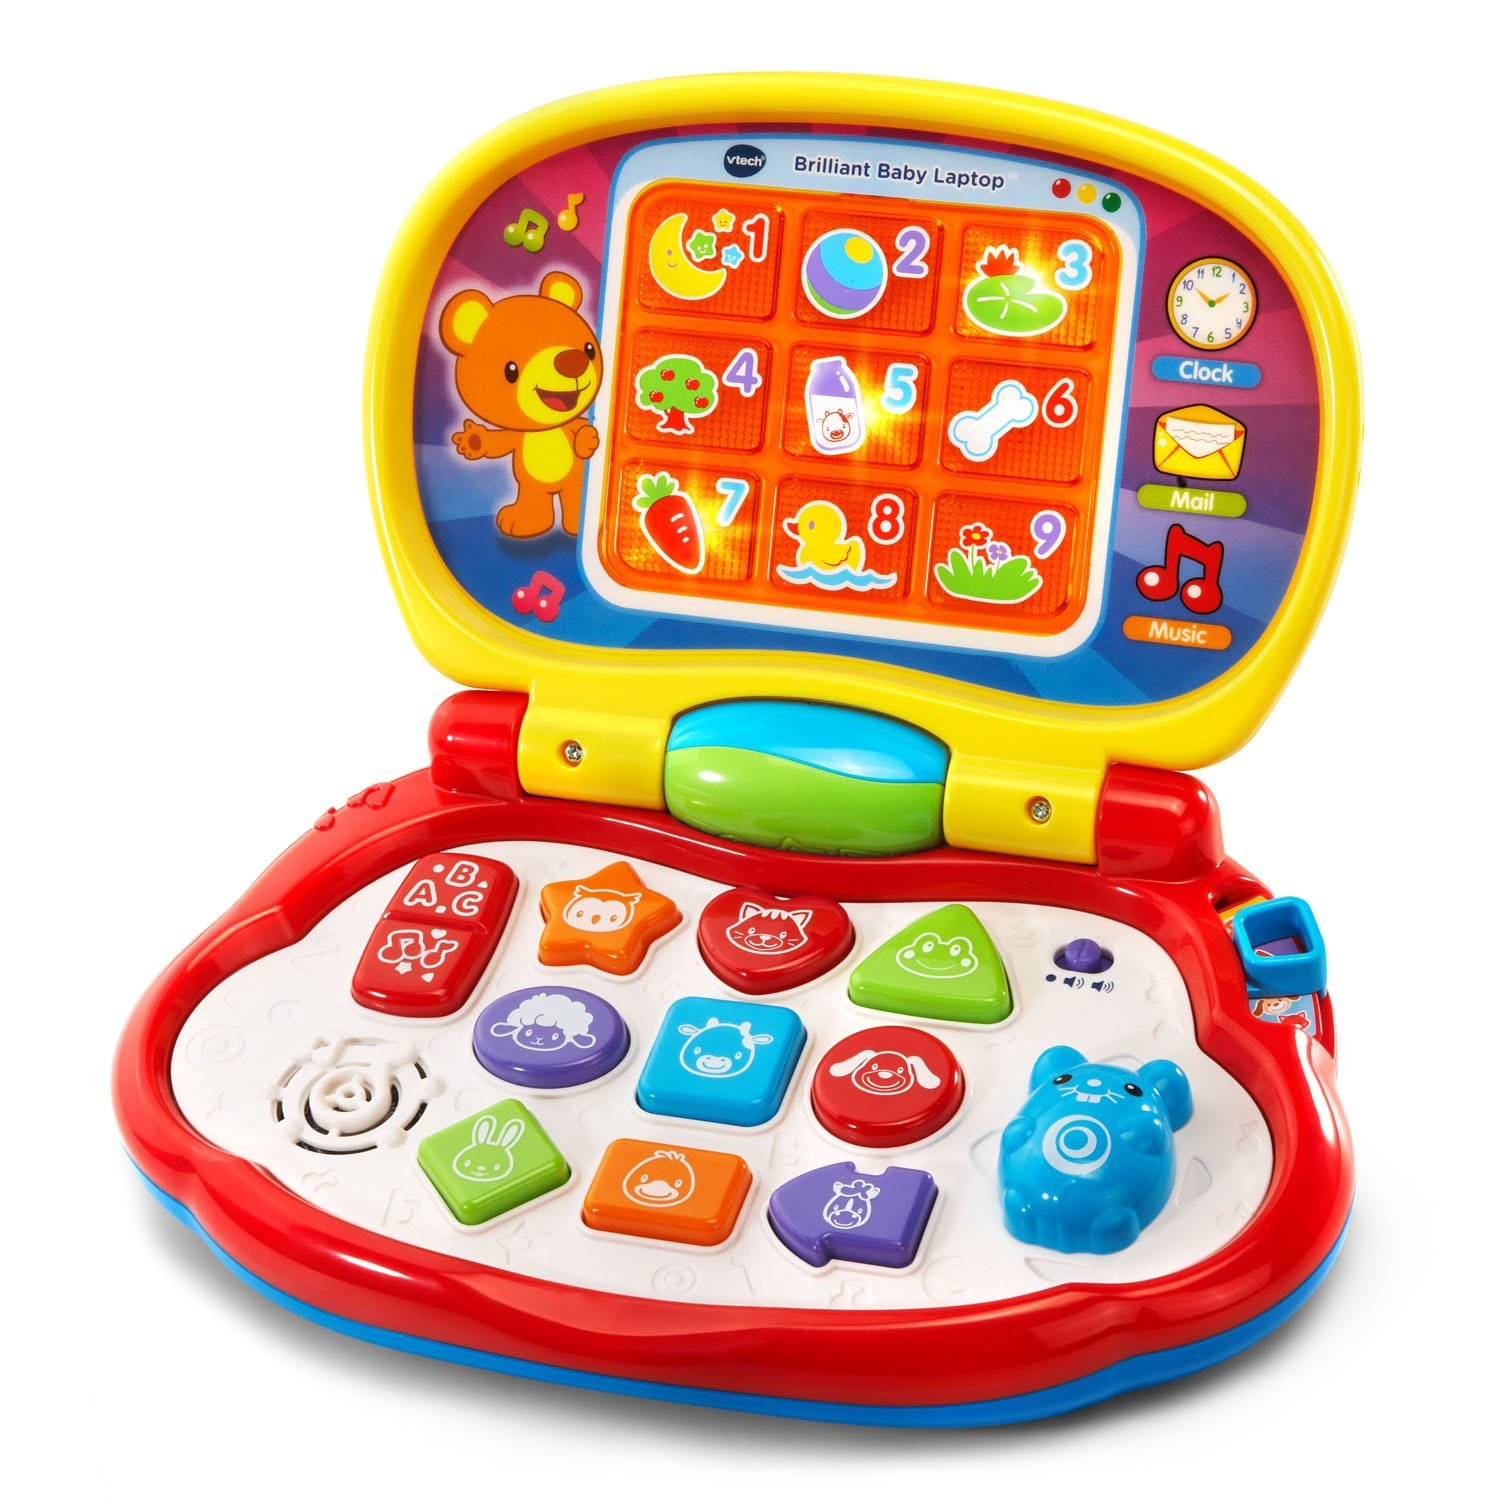 Brilliant Baby Laptop, Explore and learn with the Brilliant Baby Laptop by VTech; this... by VTech